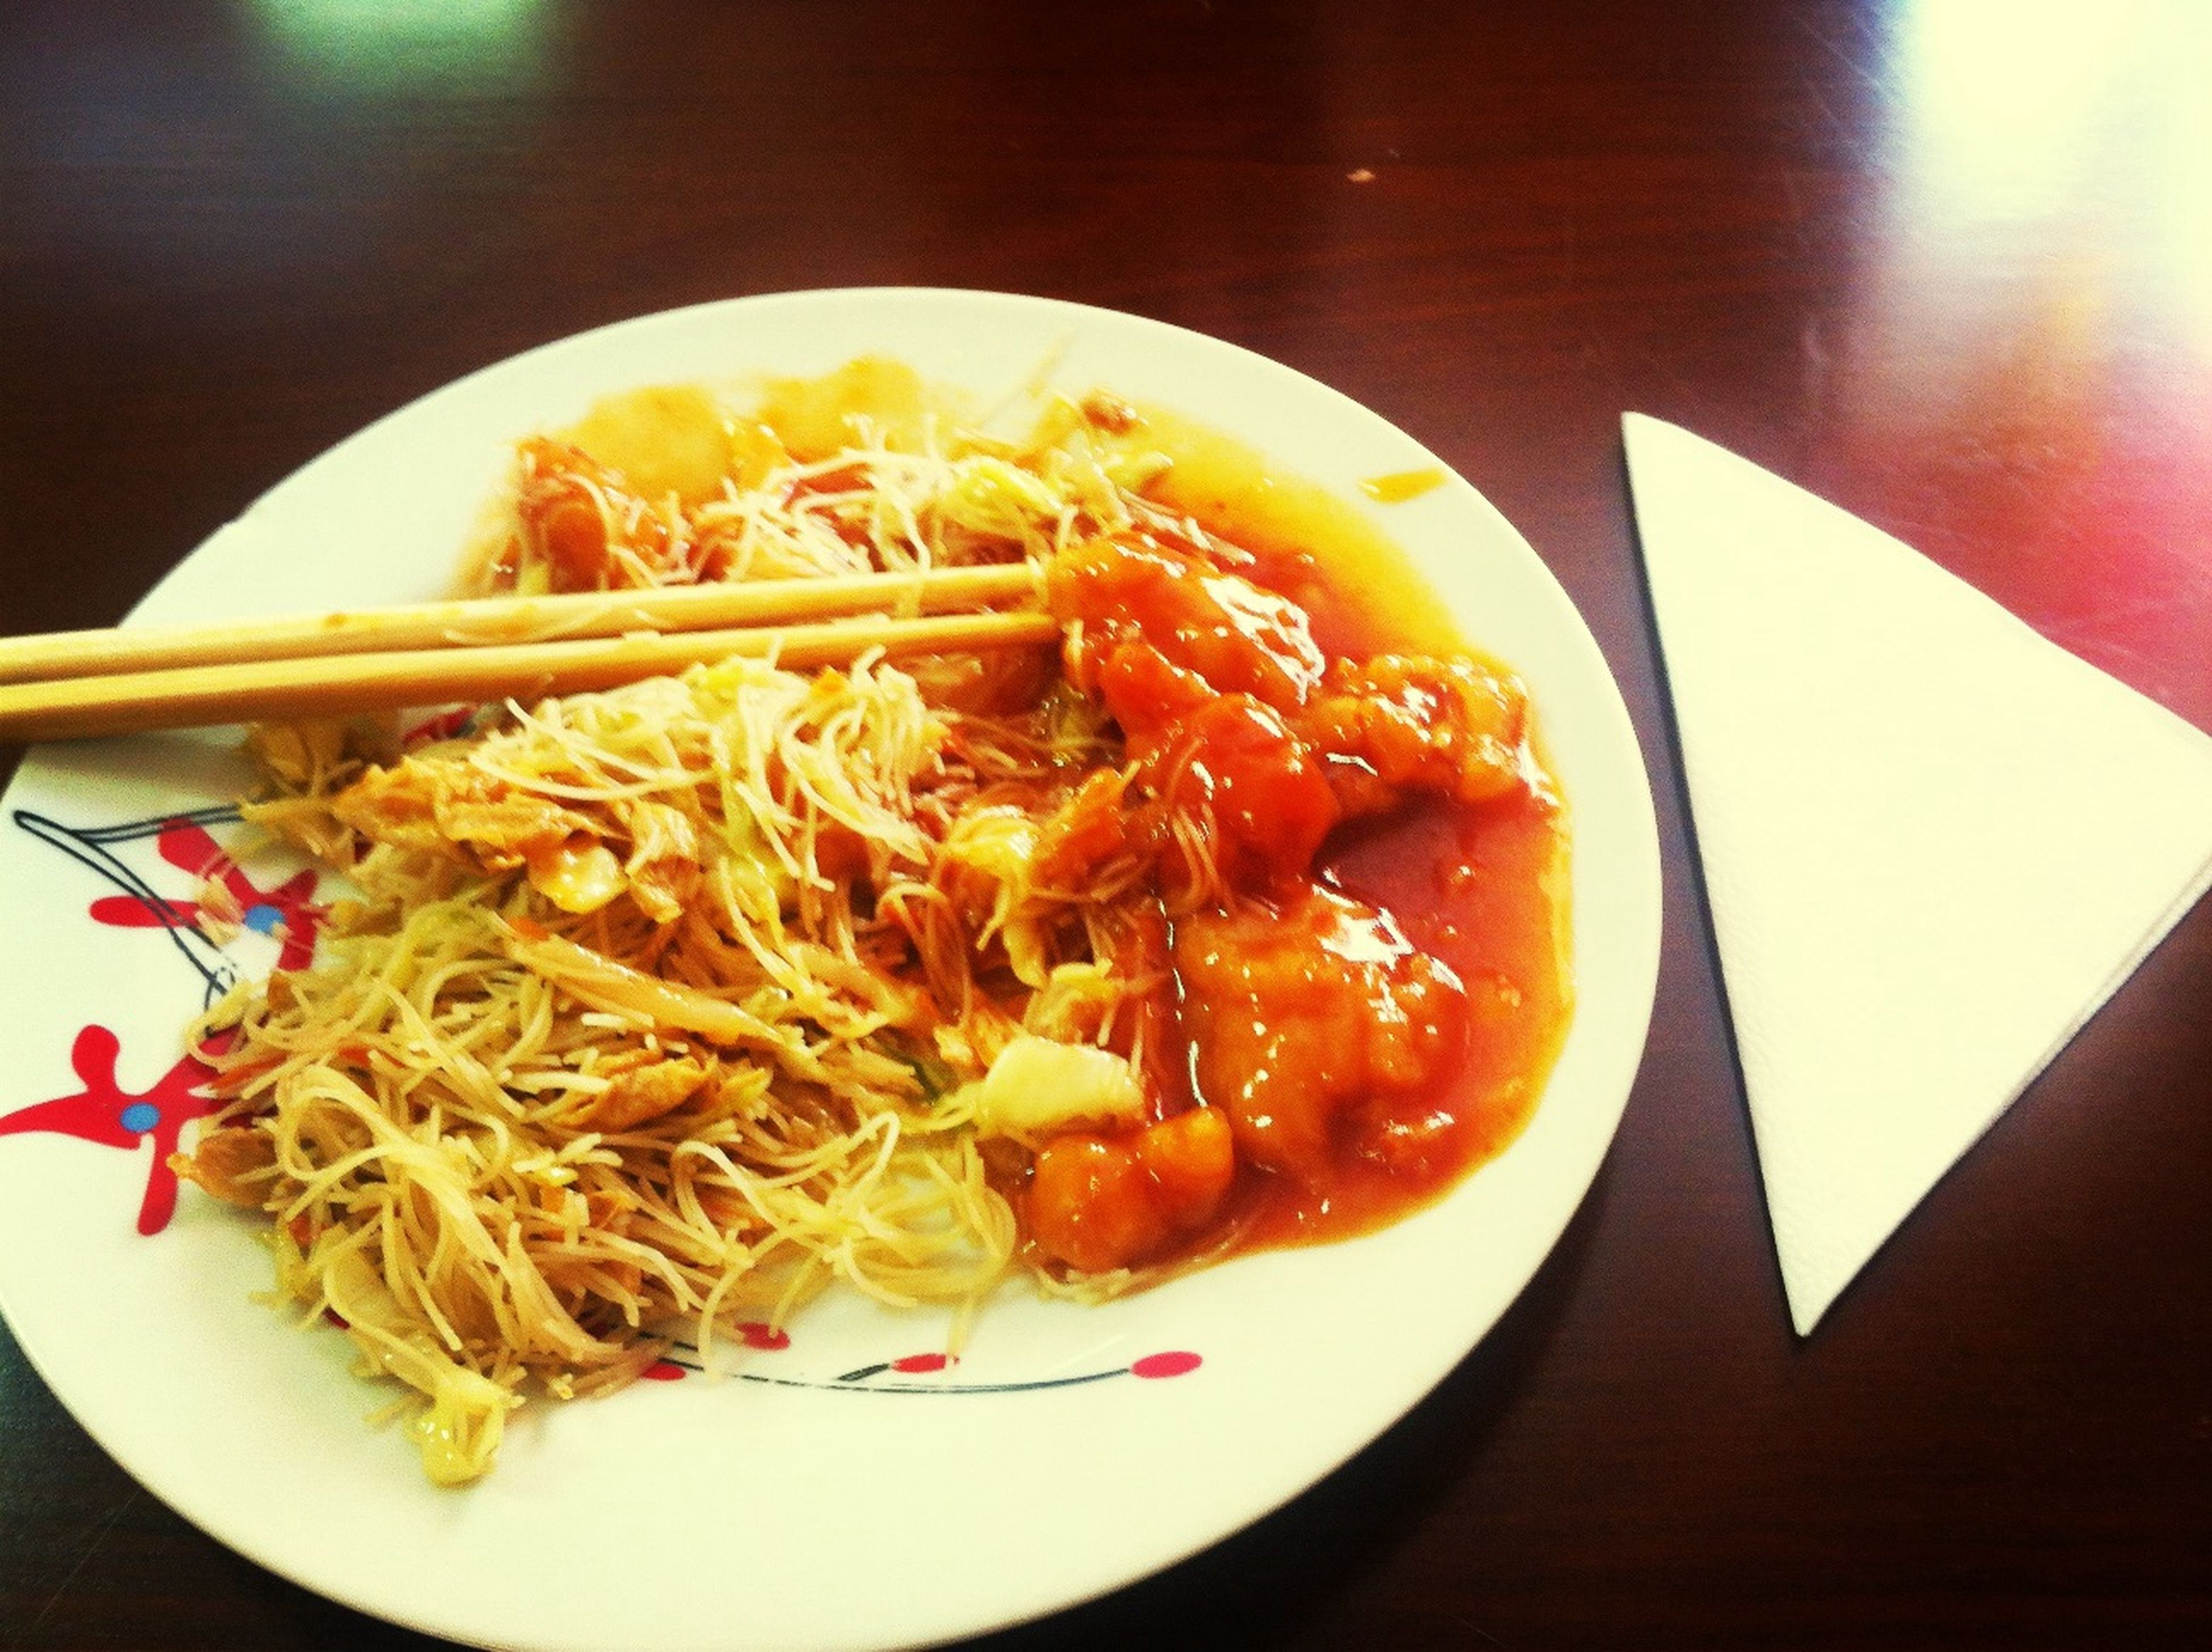 food and drink, food, indoors, ready-to-eat, plate, freshness, meal, serving size, healthy eating, noodles, still life, table, bowl, close-up, high angle view, pasta, indulgence, served, fork, cooked